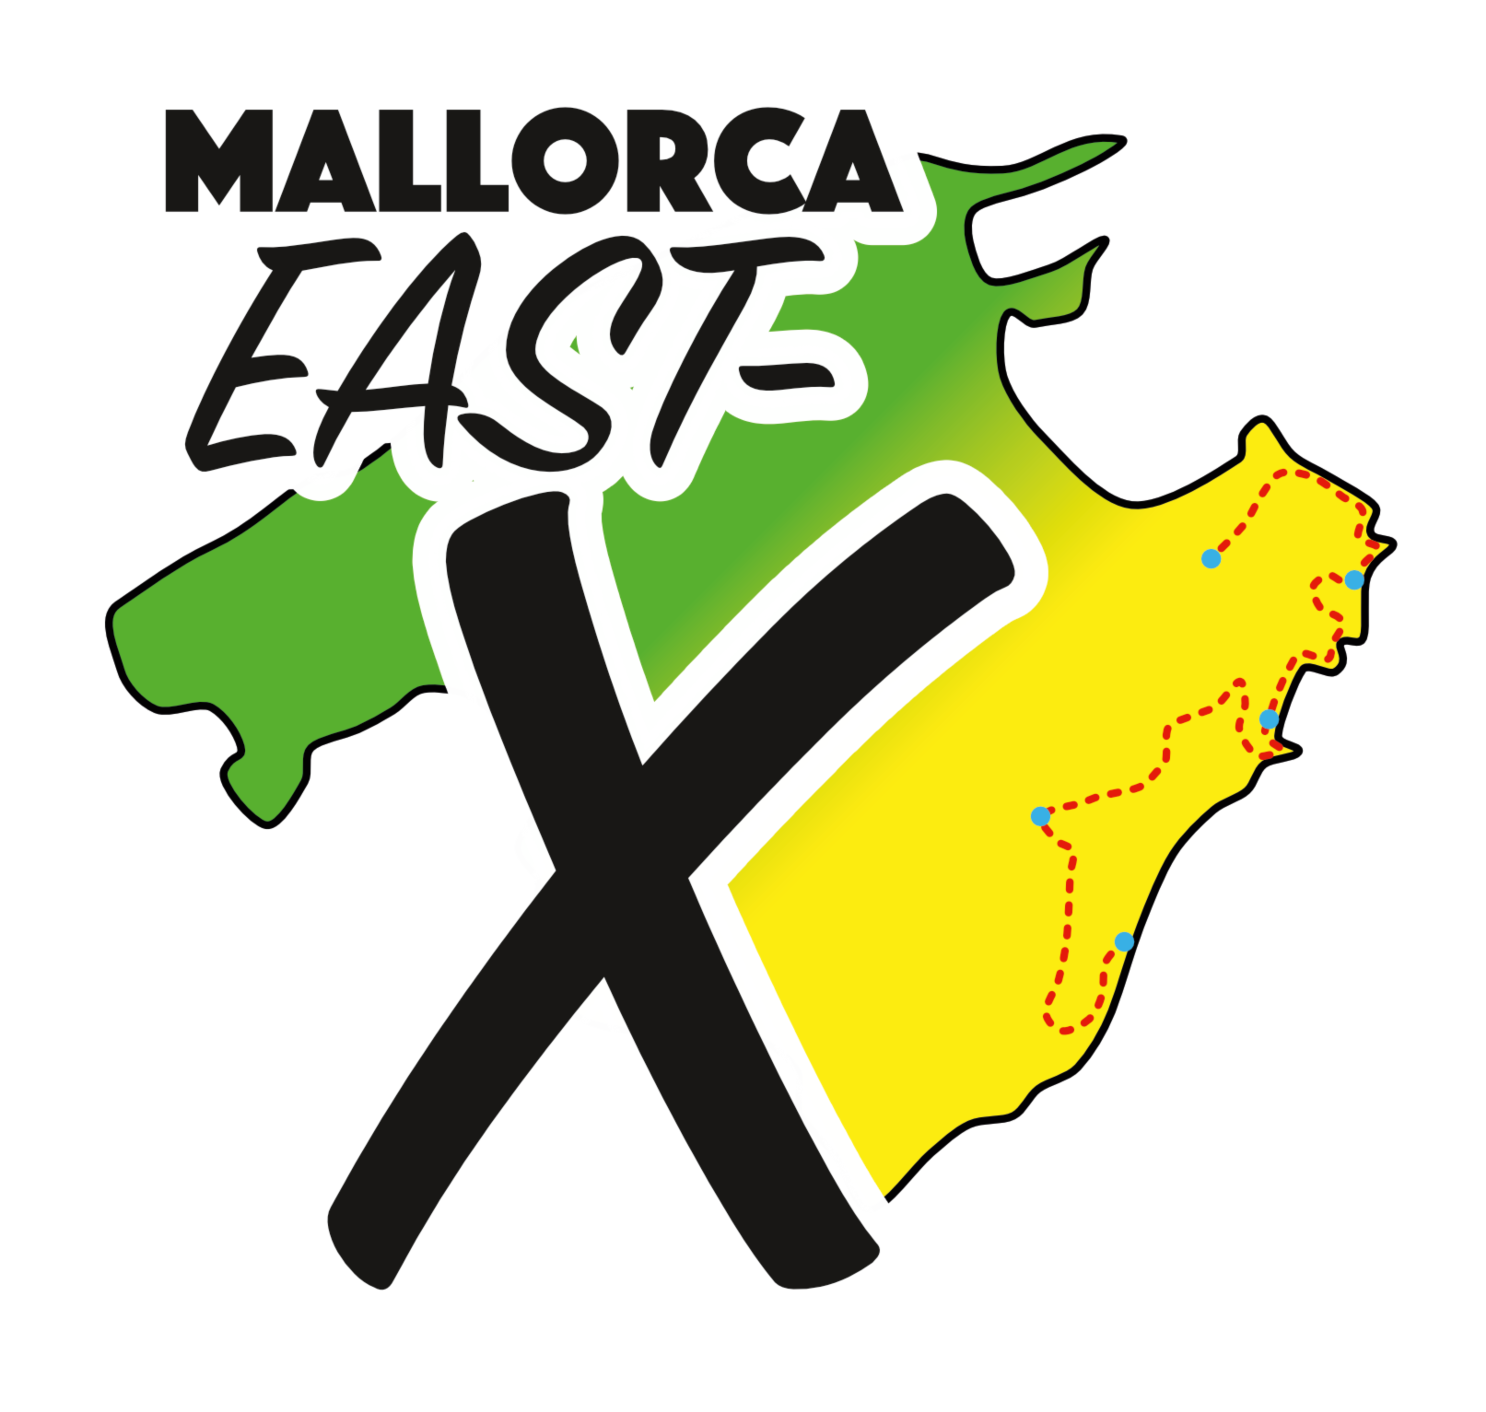 Mallorca East-Cross